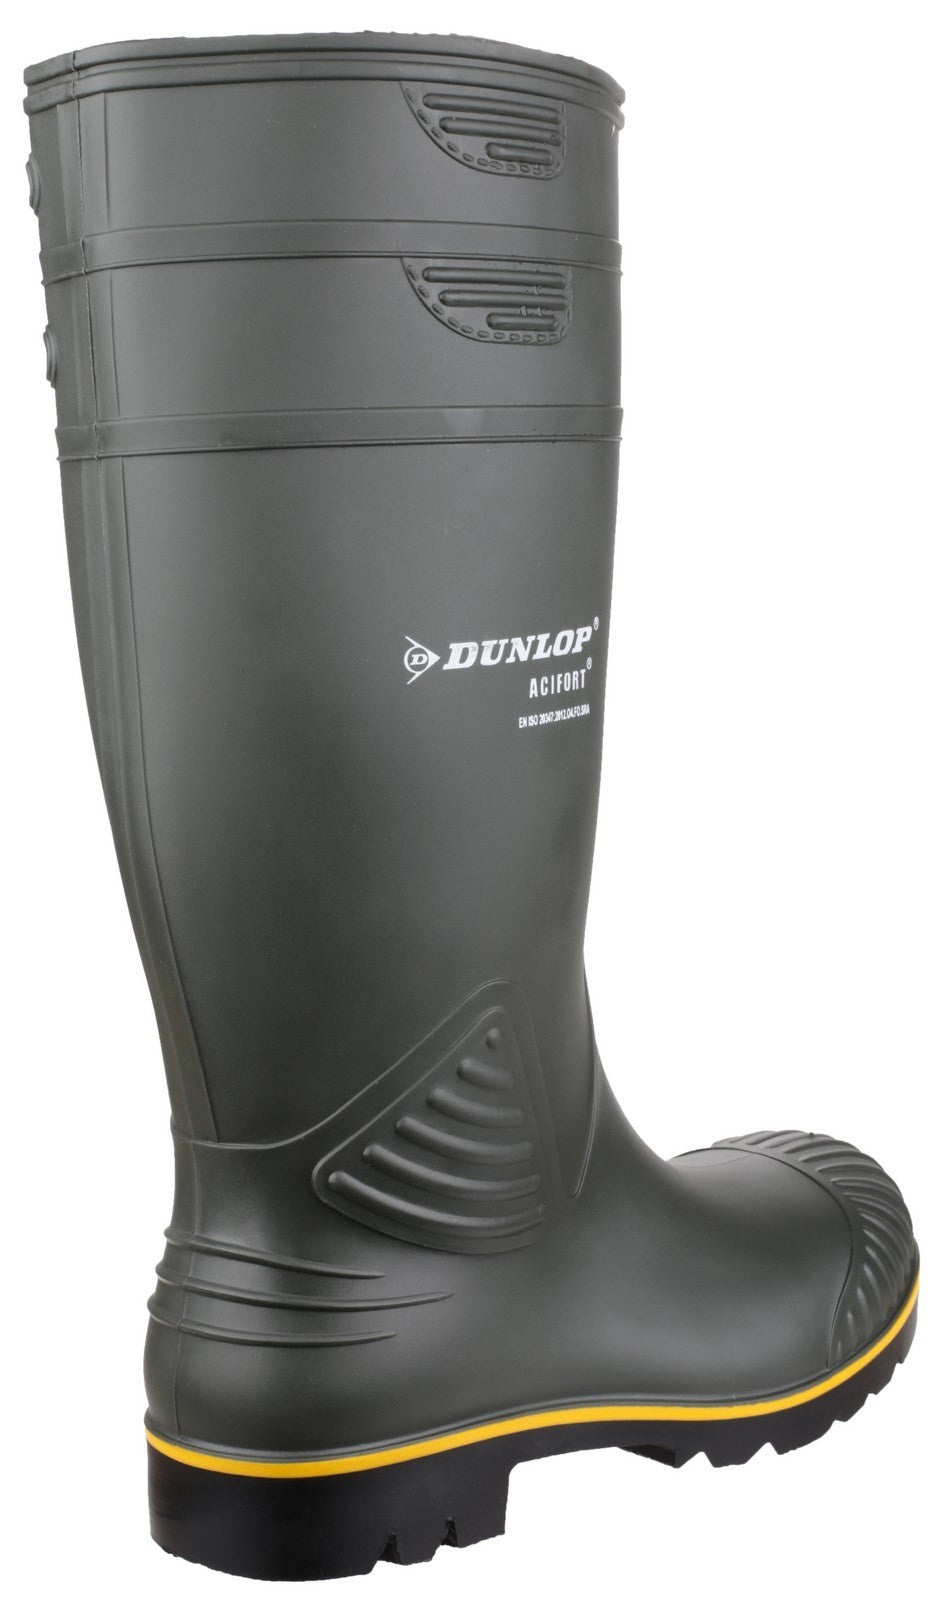 Dunlop Unisex Acifort Heavy Duty Non Safety Wellington Boot Green 22711